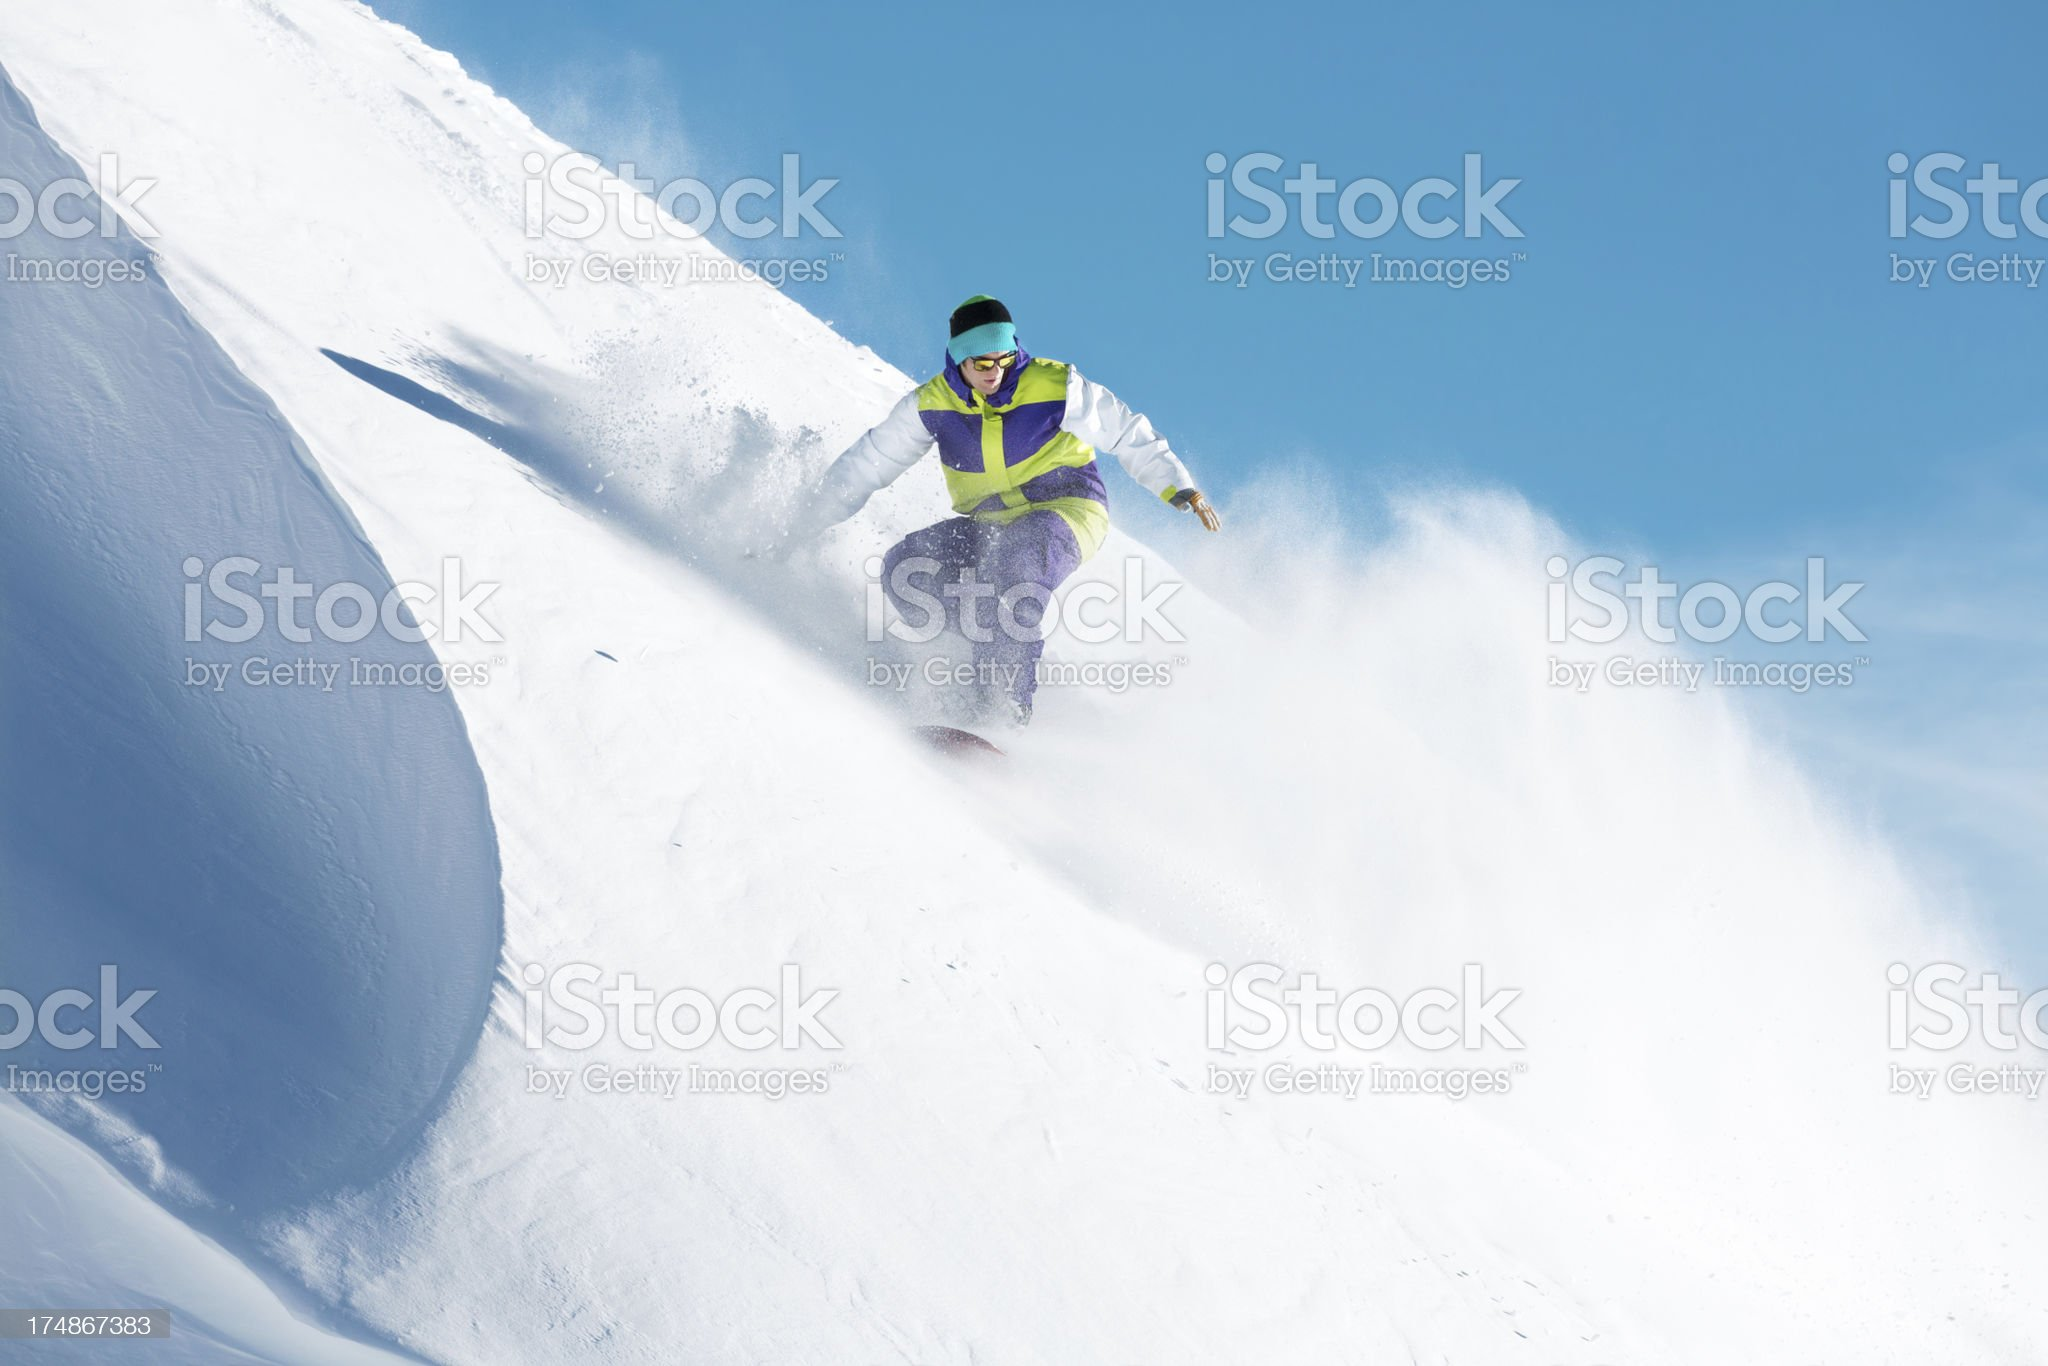 Snowboarder going downhill royalty-free stock photo